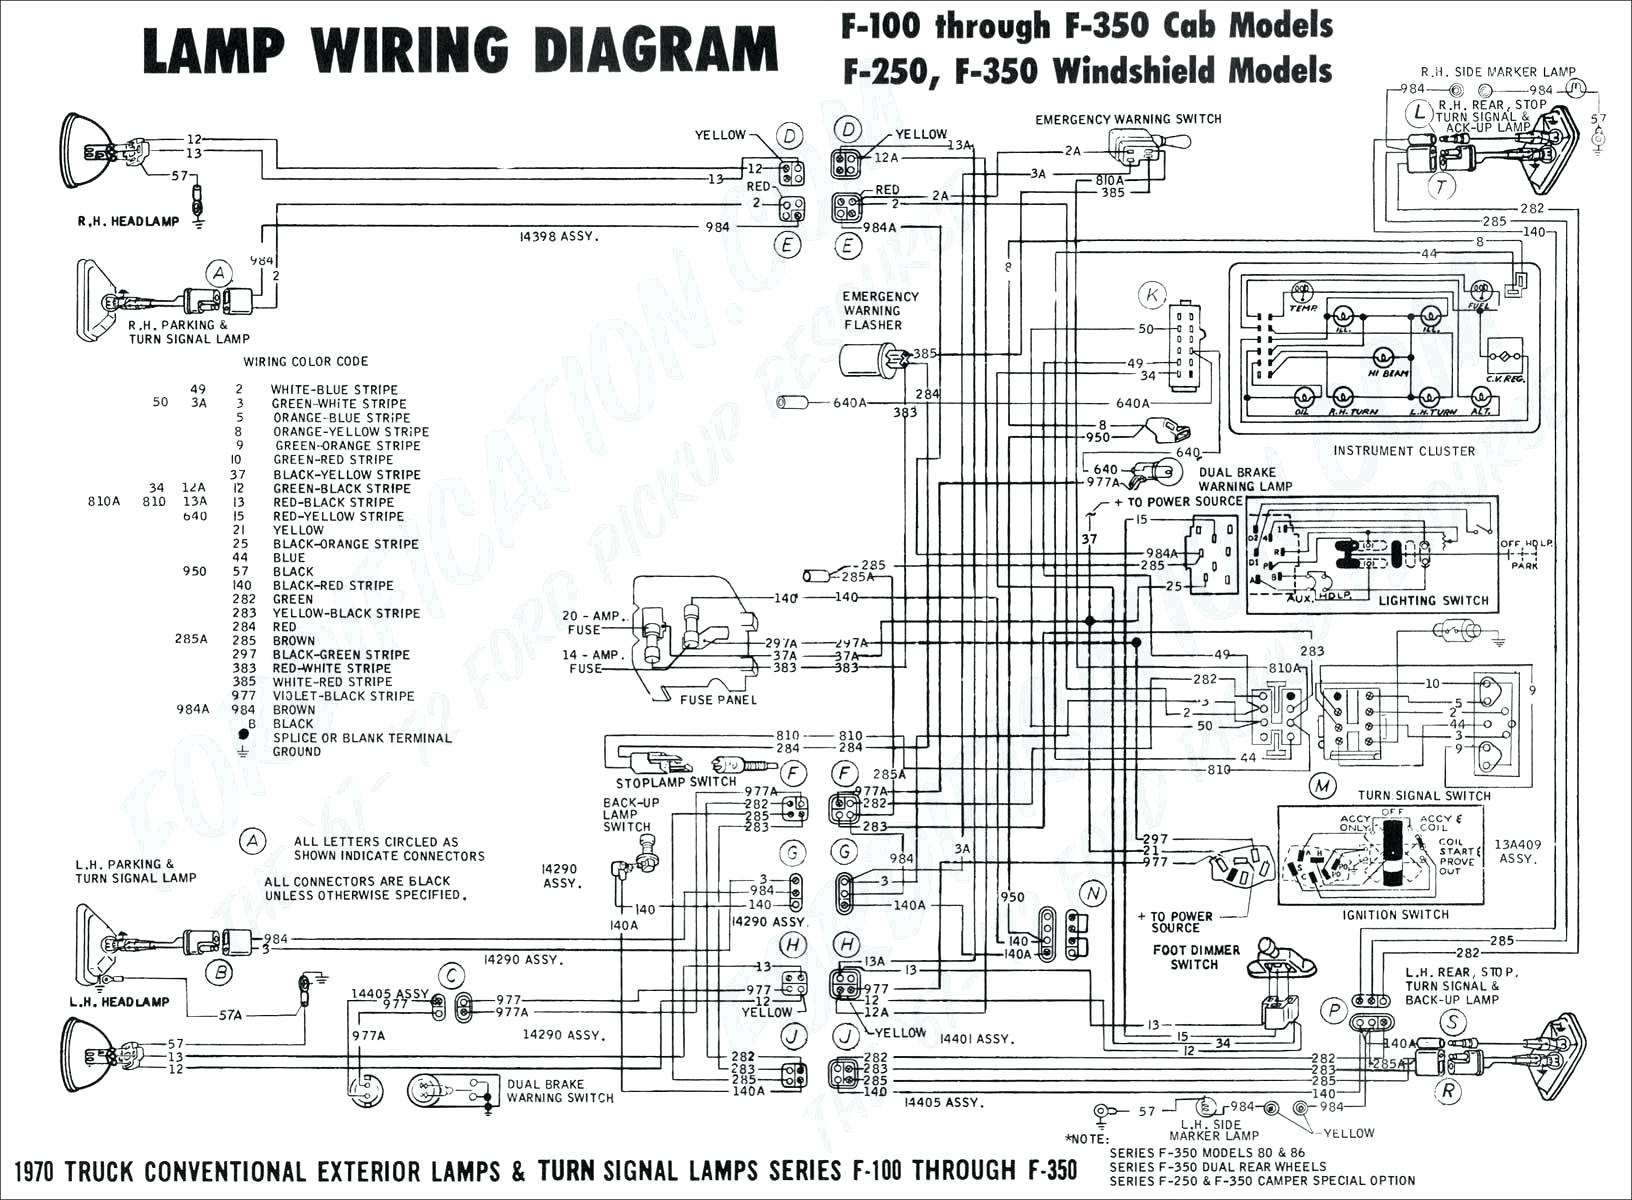 1999 Mazda Miata Engine Diagram Mx 3 Radio Wiring Free Mx3 Partment Additionally International Of